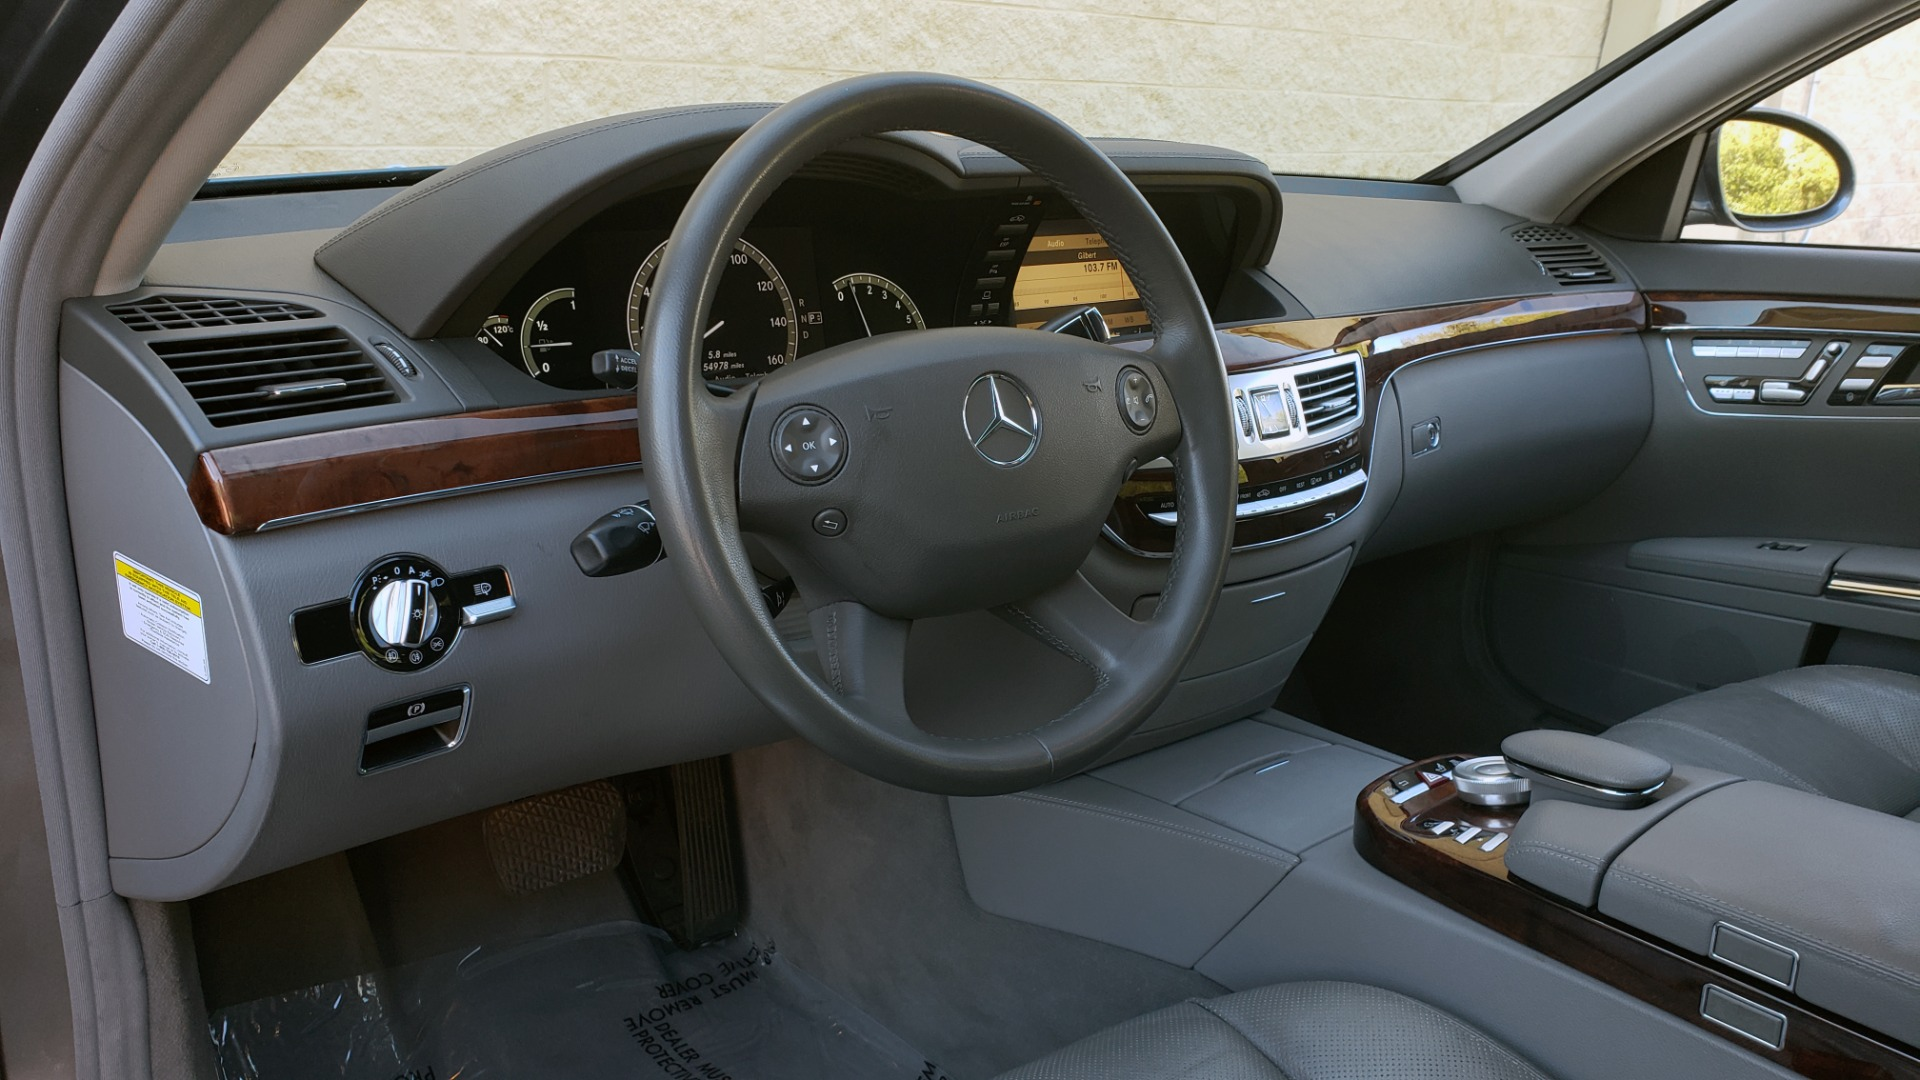 Used 2007 Mercedes-Benz S-CLASS S550 5.5L V8 / LWB / PREM 2 / NAV / SUNROOF / KEYLESS-GO for sale Sold at Formula Imports in Charlotte NC 28227 40